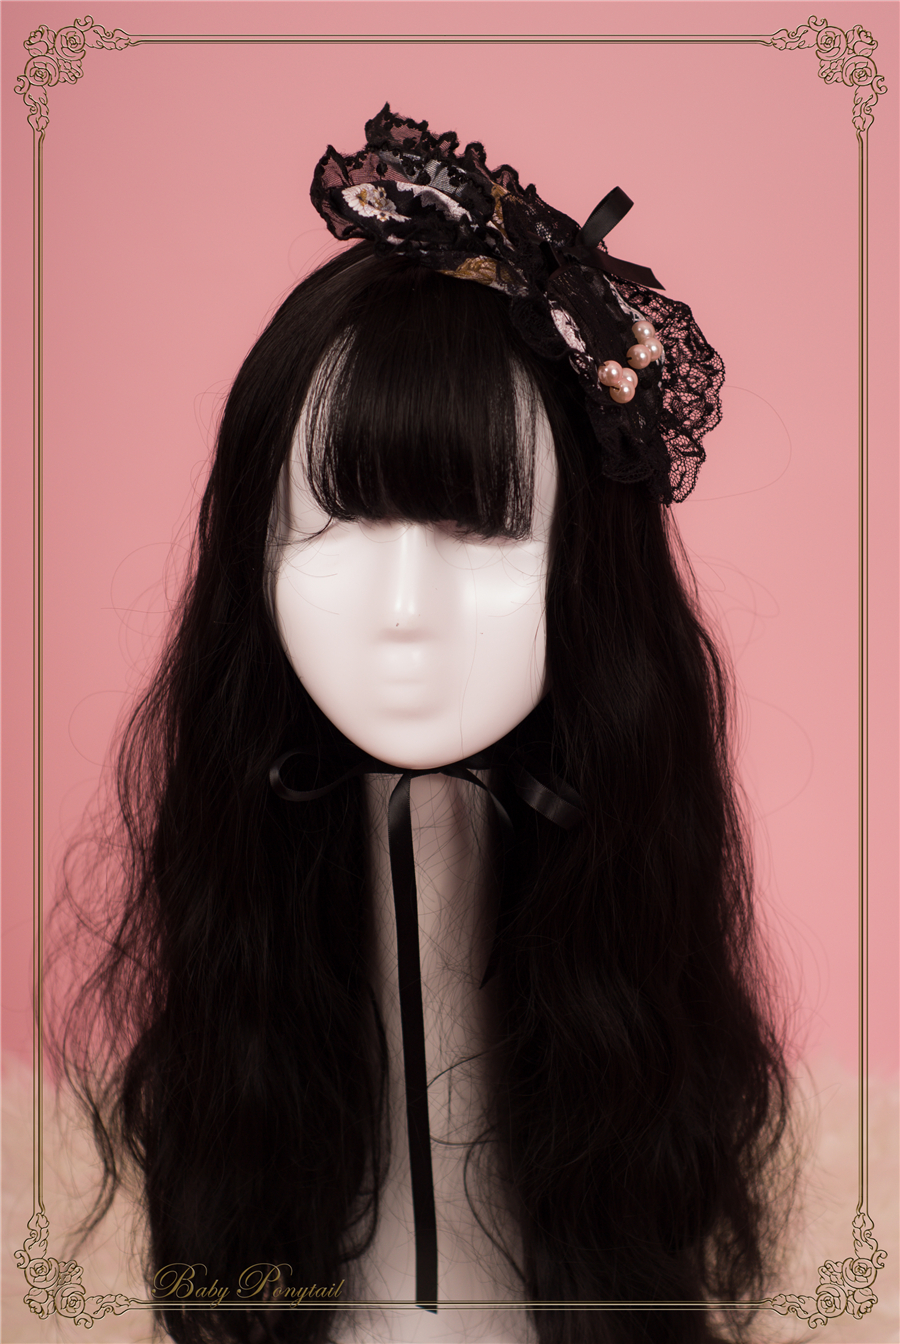 BabyPonytail_Stock Photo_My Favorite Companion_Bunny Head Dress_7.jpg